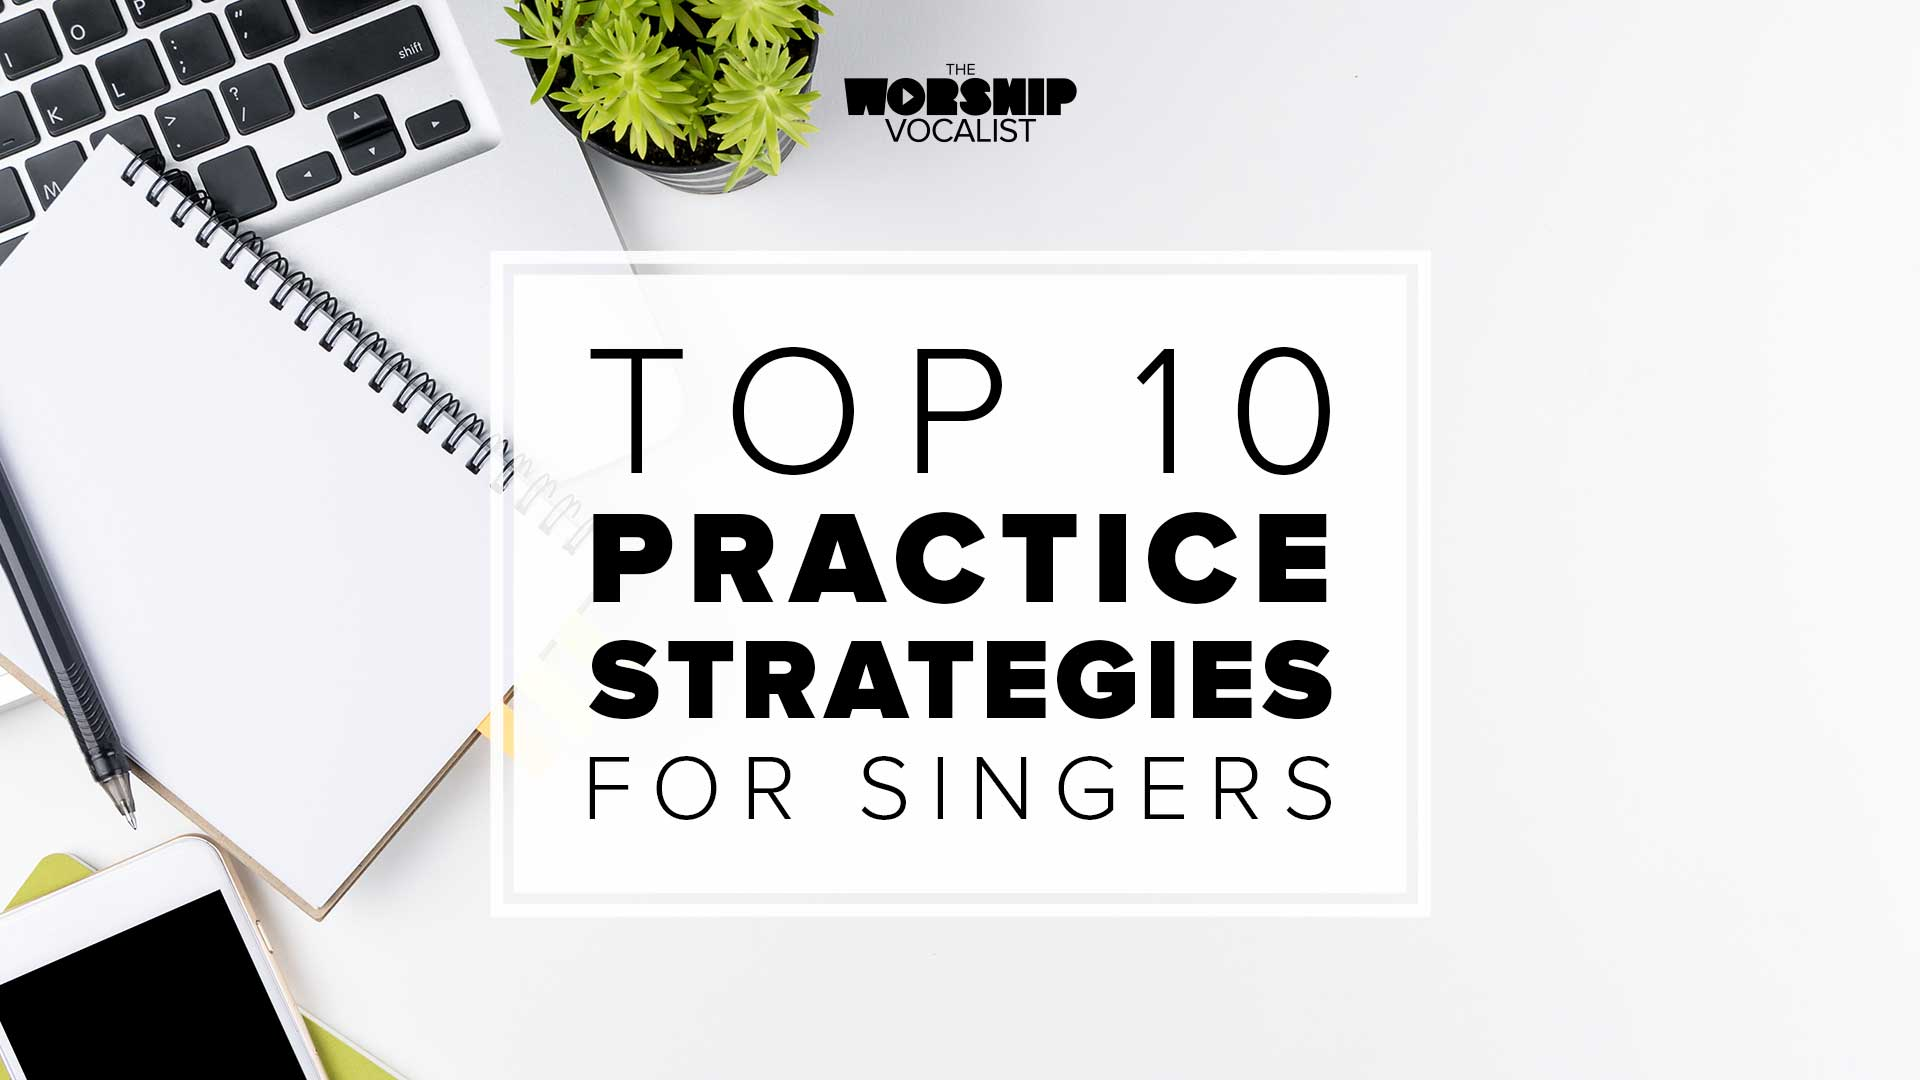 Learn the best ways to practice and get the most out of your voice as a worship vocalist